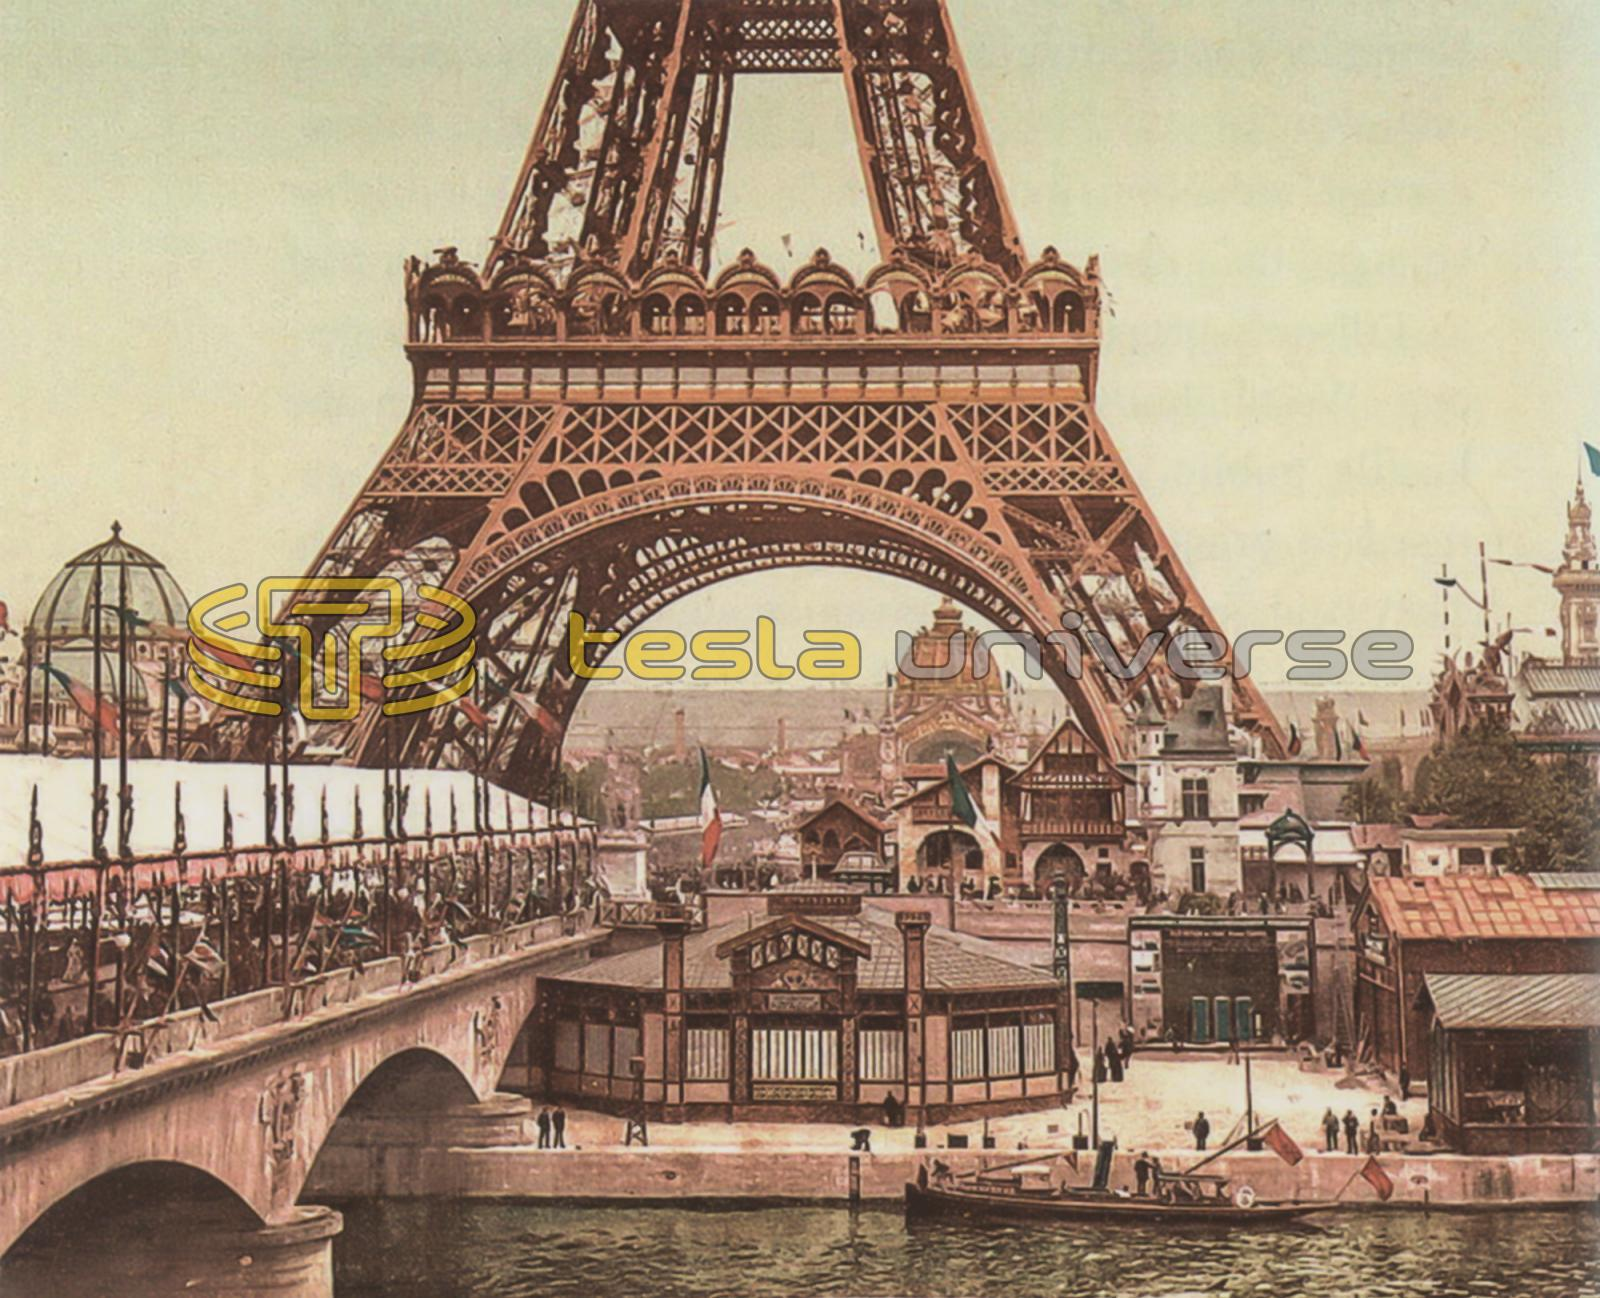 The Universal Exposition in Paris, France | Tesla Universe